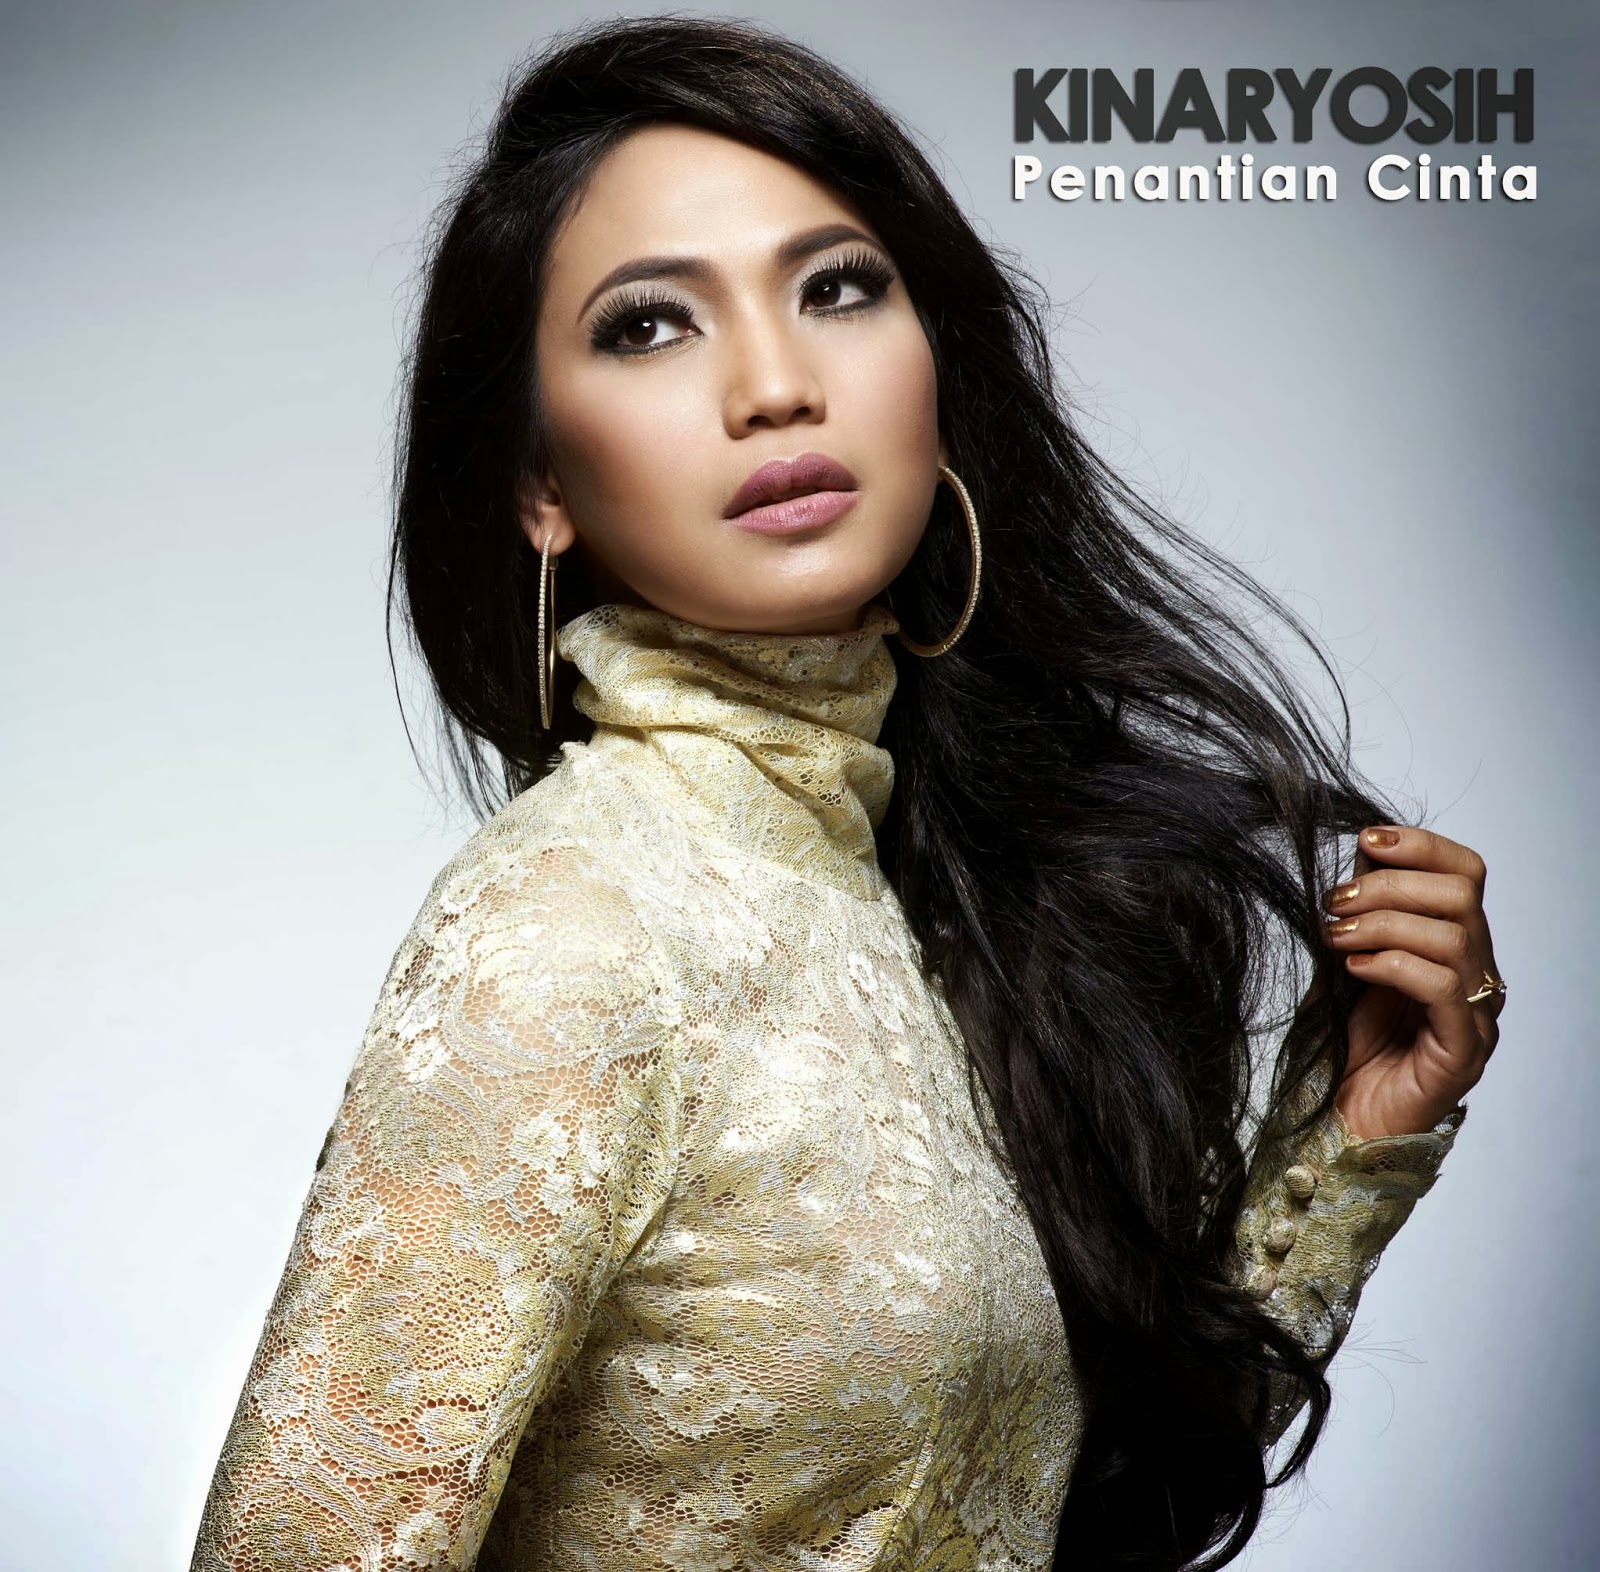 Watch Kinaryosih video